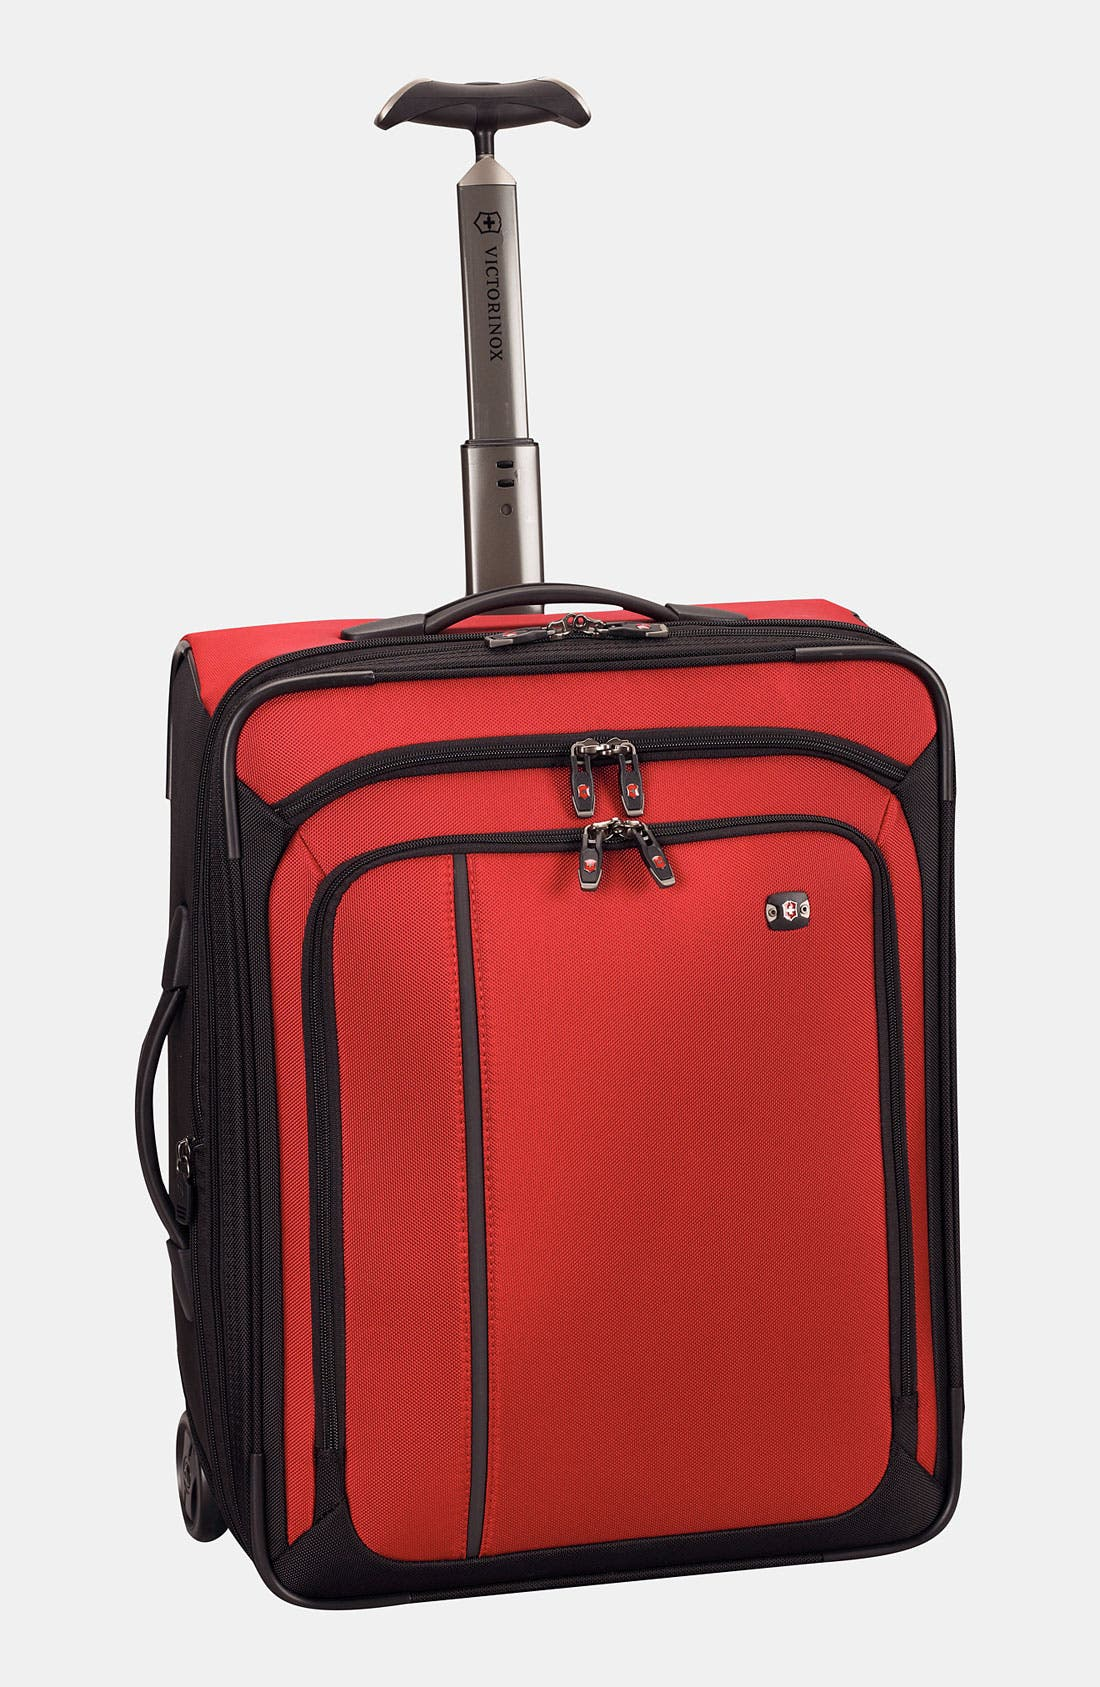 Main Image - Victorinox Swiss Army® 'Werks - Traveler' Rolling Carry-On (20 Inch)